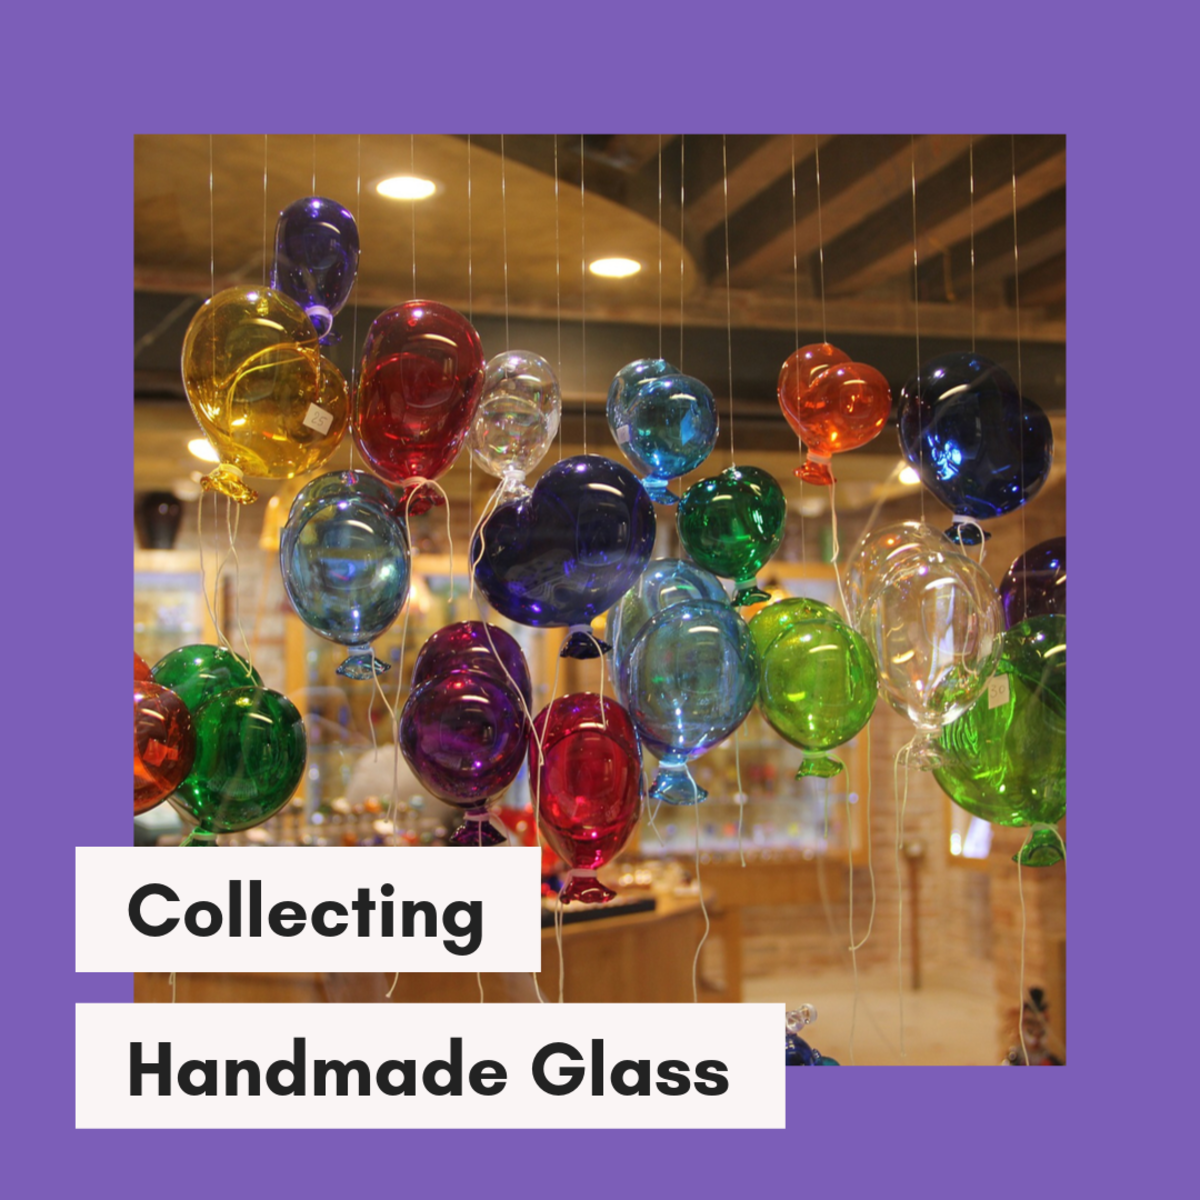 Collecting and Appreciating the Art of Hand-Spun and Blown Glass